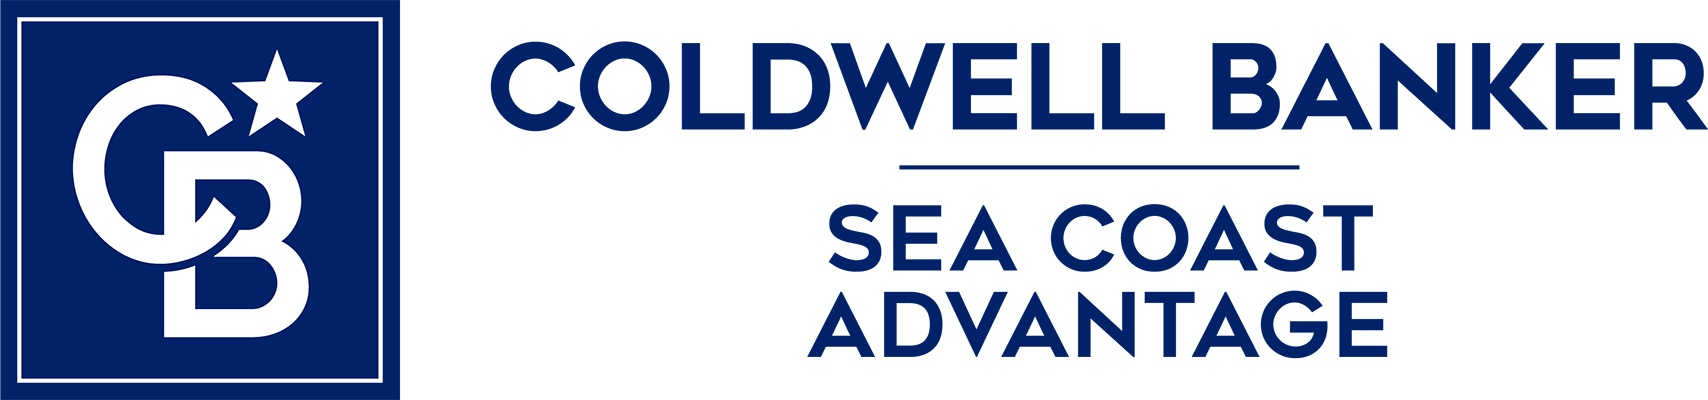 Nell Bott - Coldwell Banker Sea Coast Advantage Realty Logo